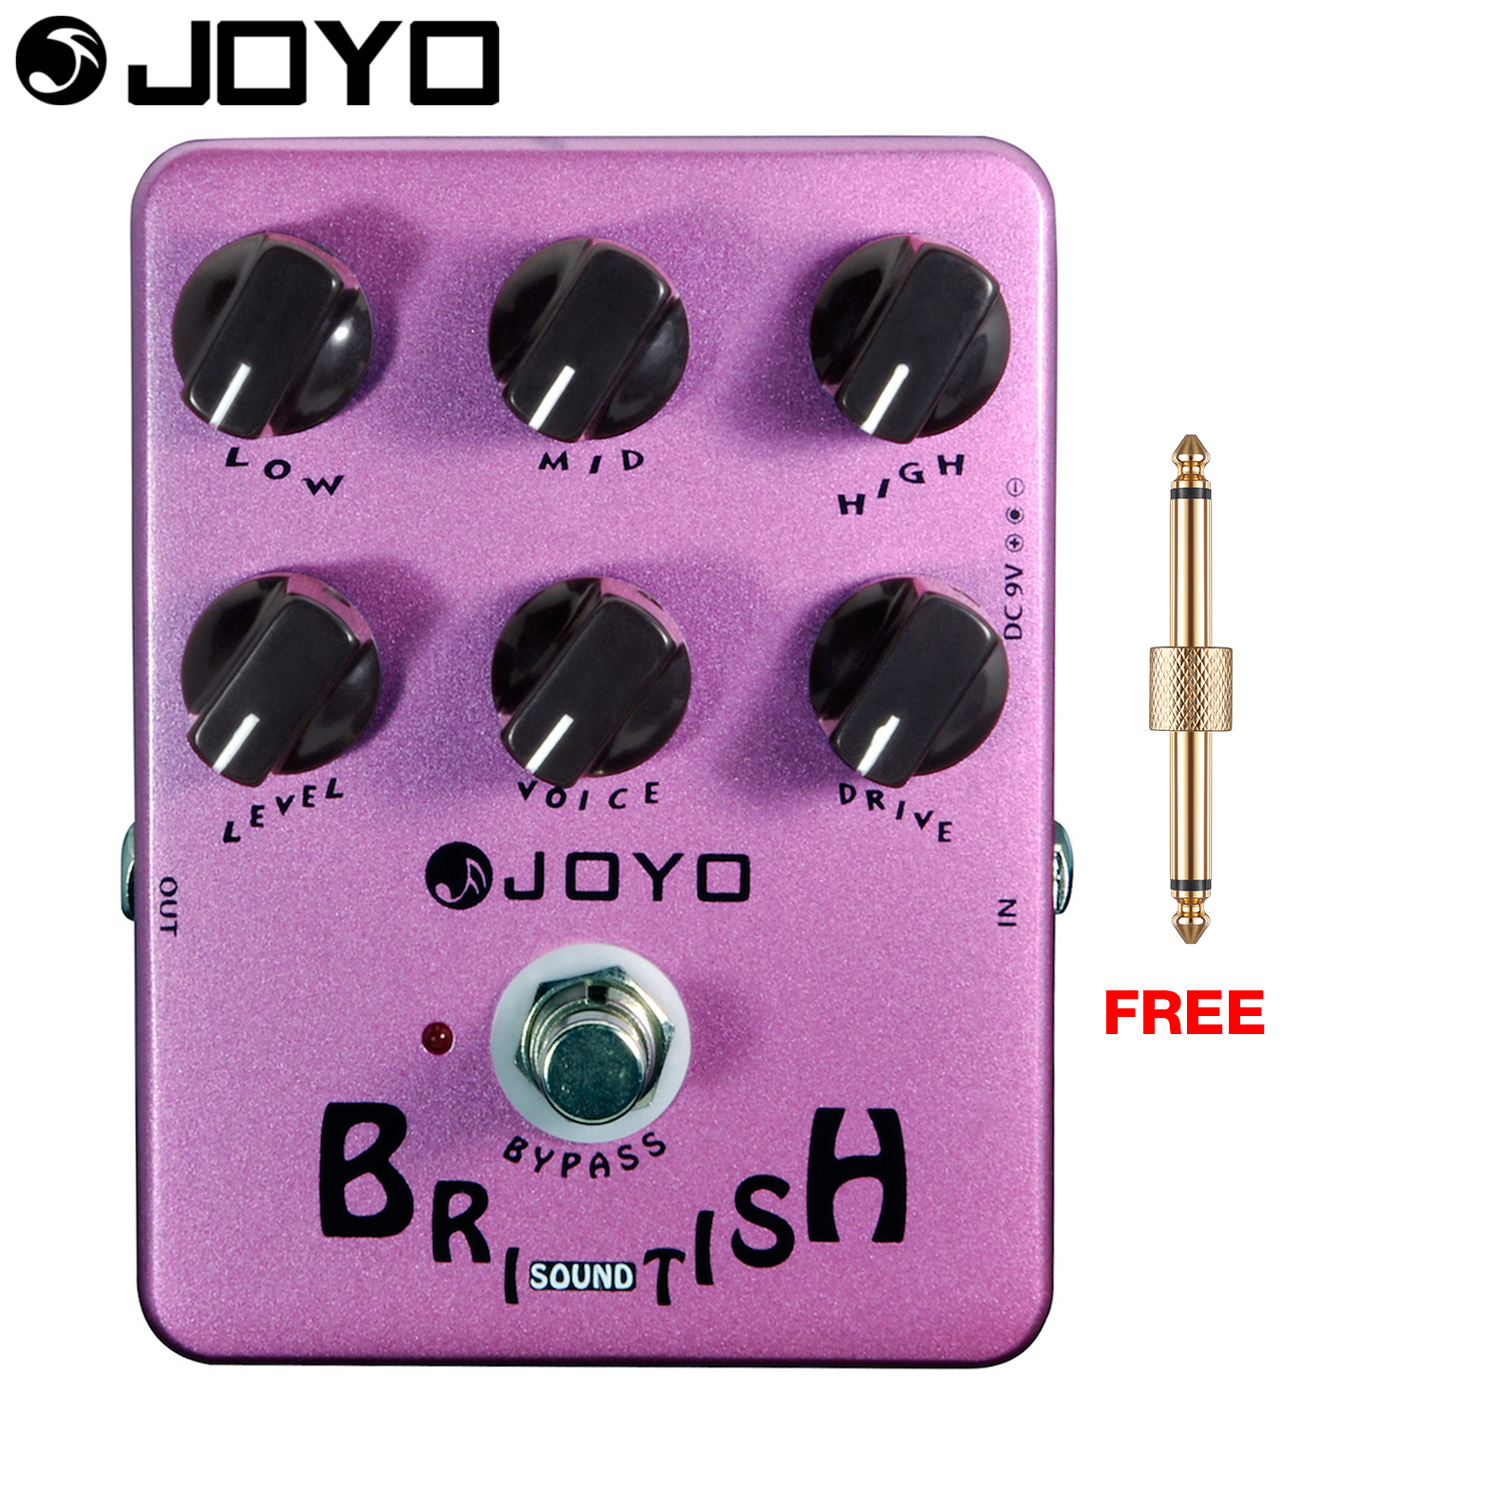 JOYO British Sound Overdrive Electric Guitar Effect Pedal All Analog True Bypass JF-16 with Free Connector aroma adr 3 dumbler amp simulator guitar effect pedal mini single pedals with true bypass aluminium alloy guitar accessories